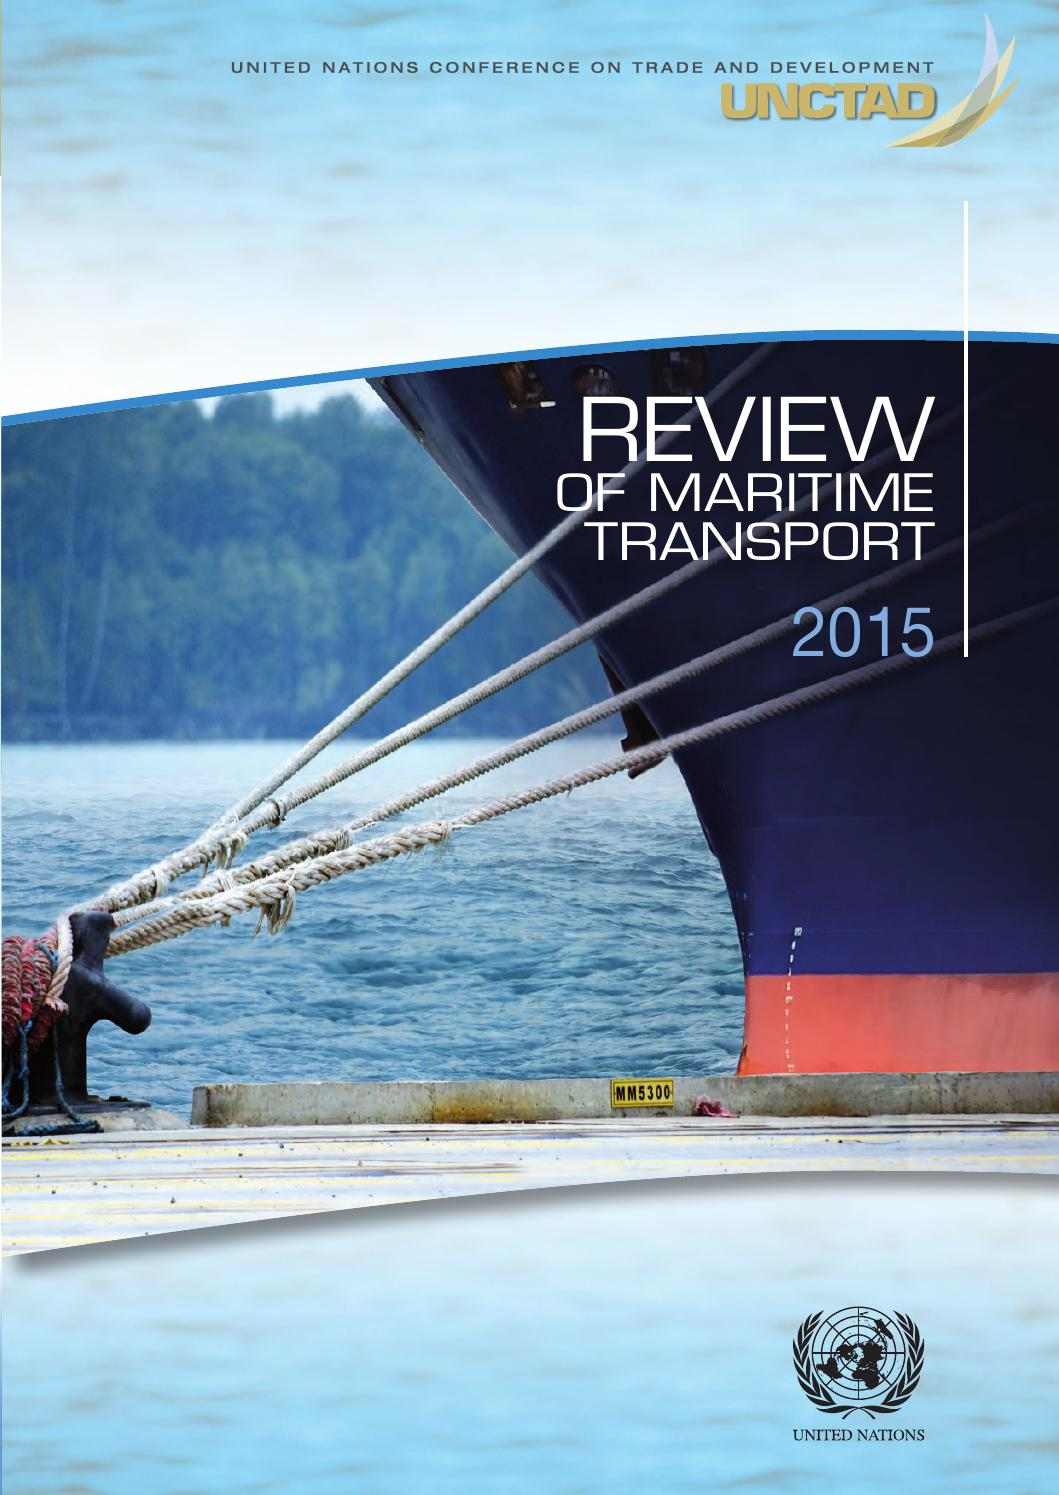 review of maritime transport Maritime transport 2016 portopia, review of maritime transport 2016 by portopia 10, jan 2017 the review of maritime transport 2016 is published annually by the unctad secretariat since 1968 and aims to foster the transparency of maritime markets and.